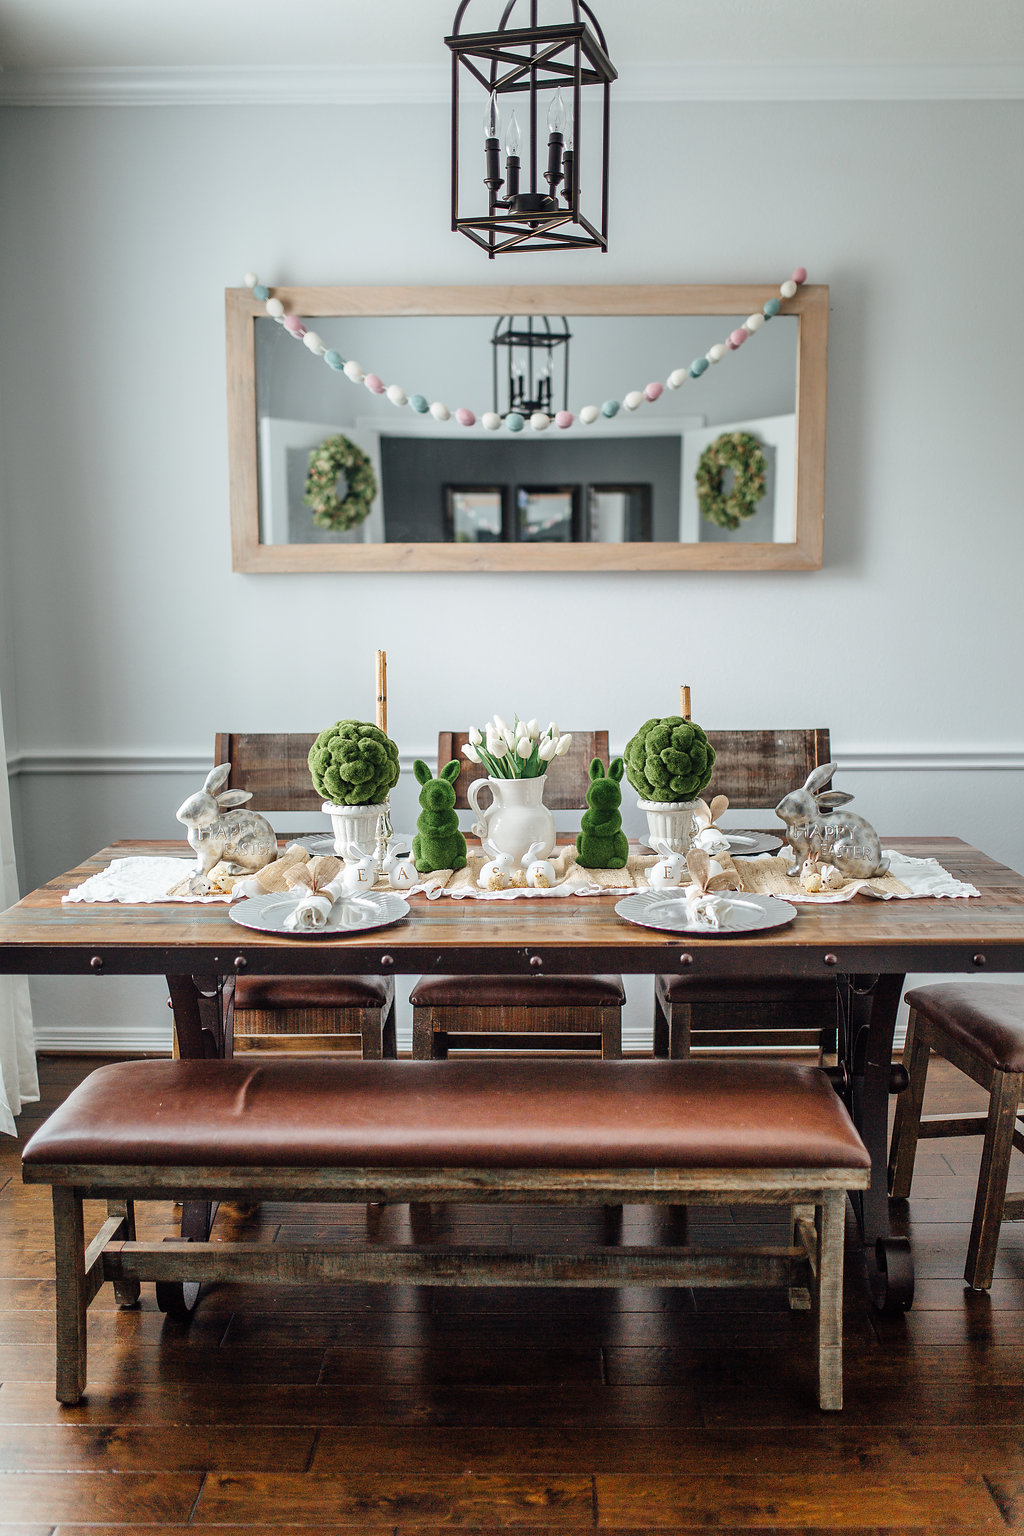 Looking for ideas to spruce up your Spring Table decor? Lifestyle blogger Elly shared over 15 gorgeous Spring Table Settings you can copy!